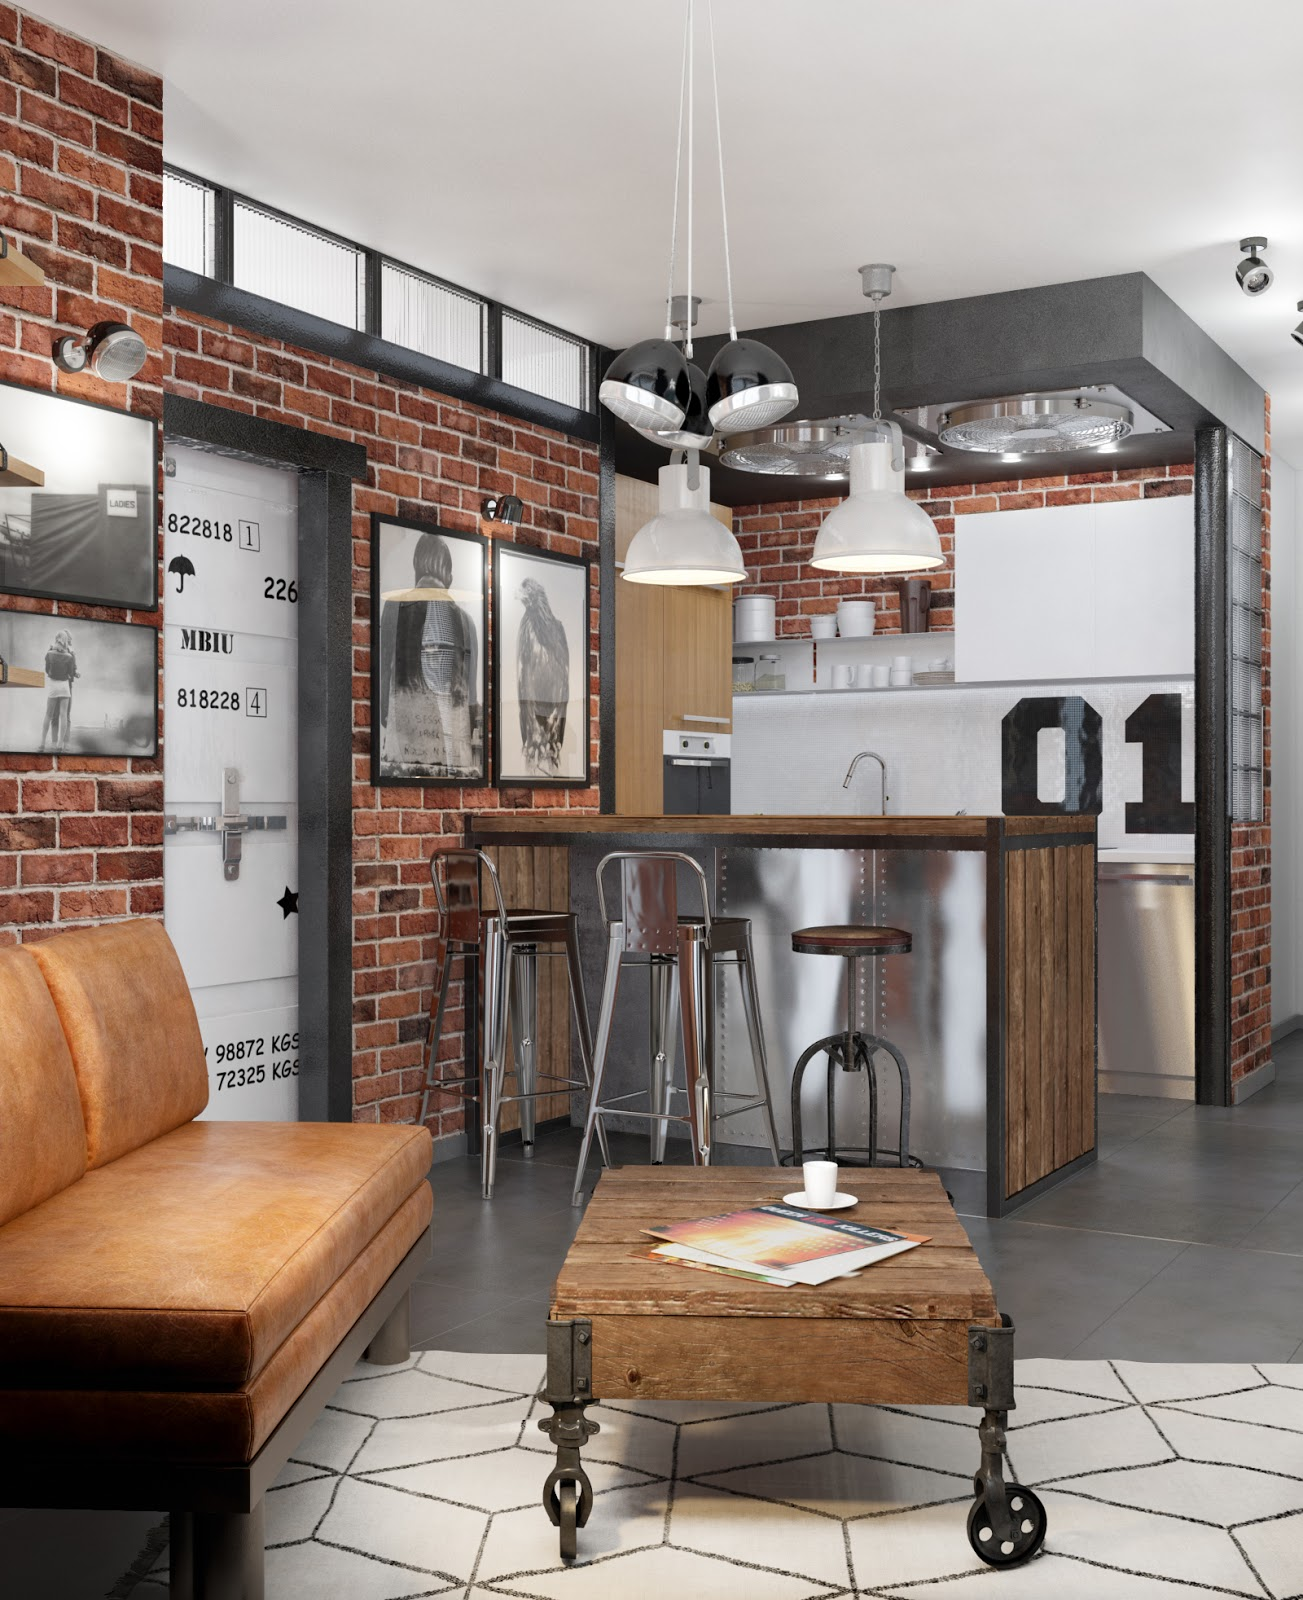 un loft fa on seventies en russie planete deco a homes world bloglovin. Black Bedroom Furniture Sets. Home Design Ideas